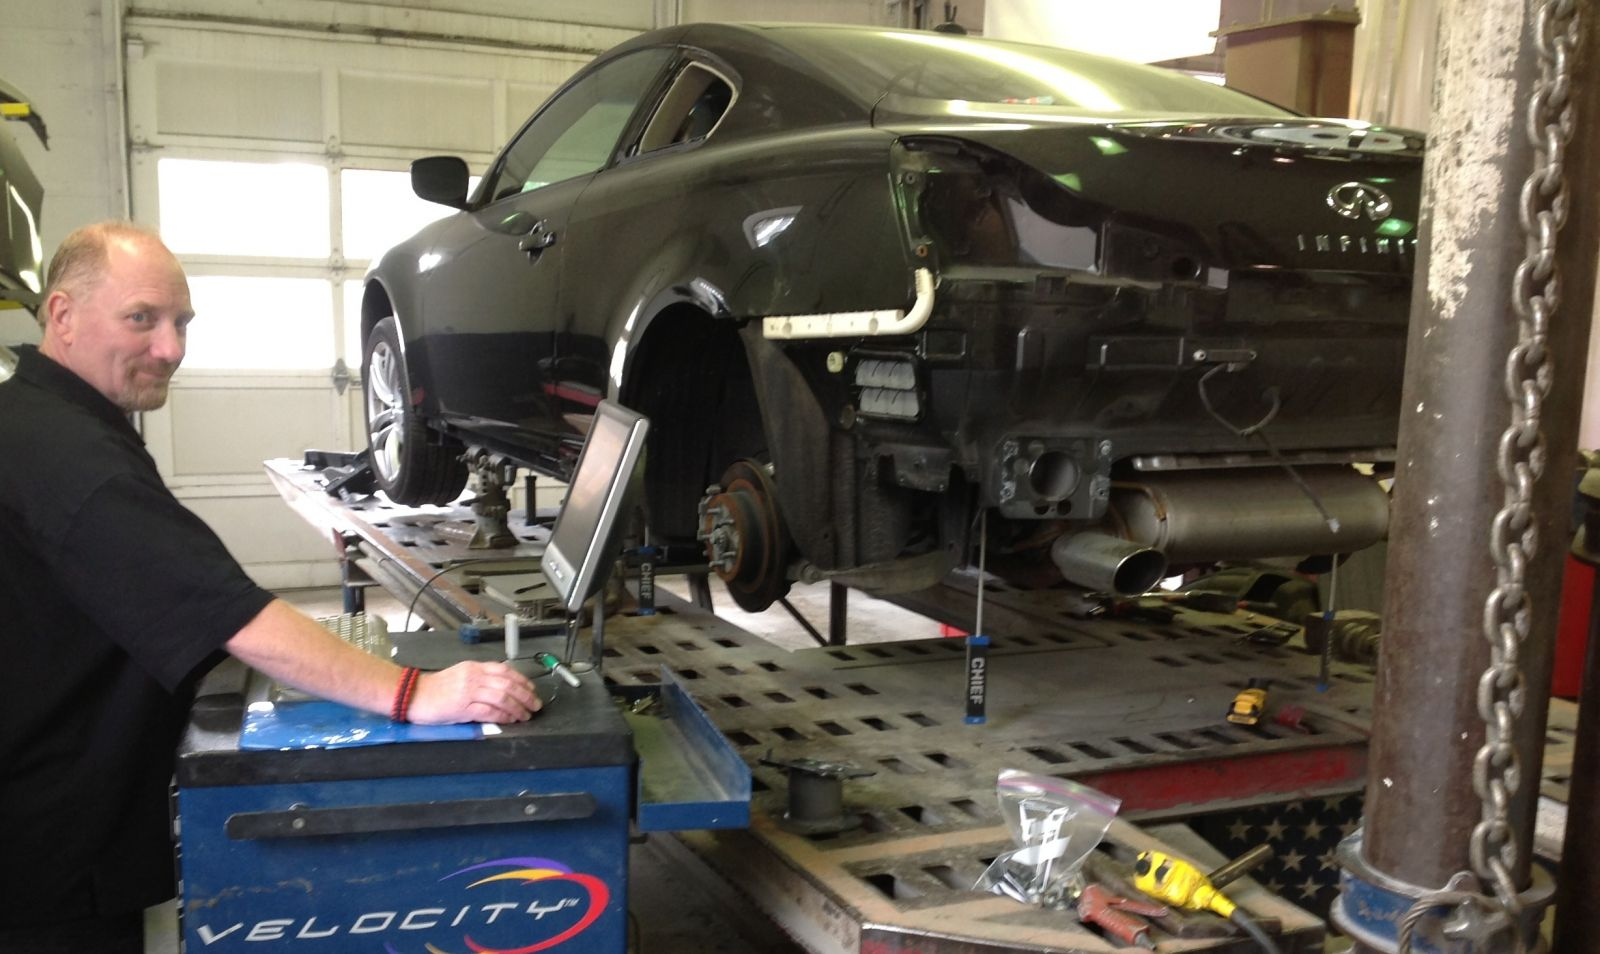 Wally's CARSTAR Auto Body: Repair Tech